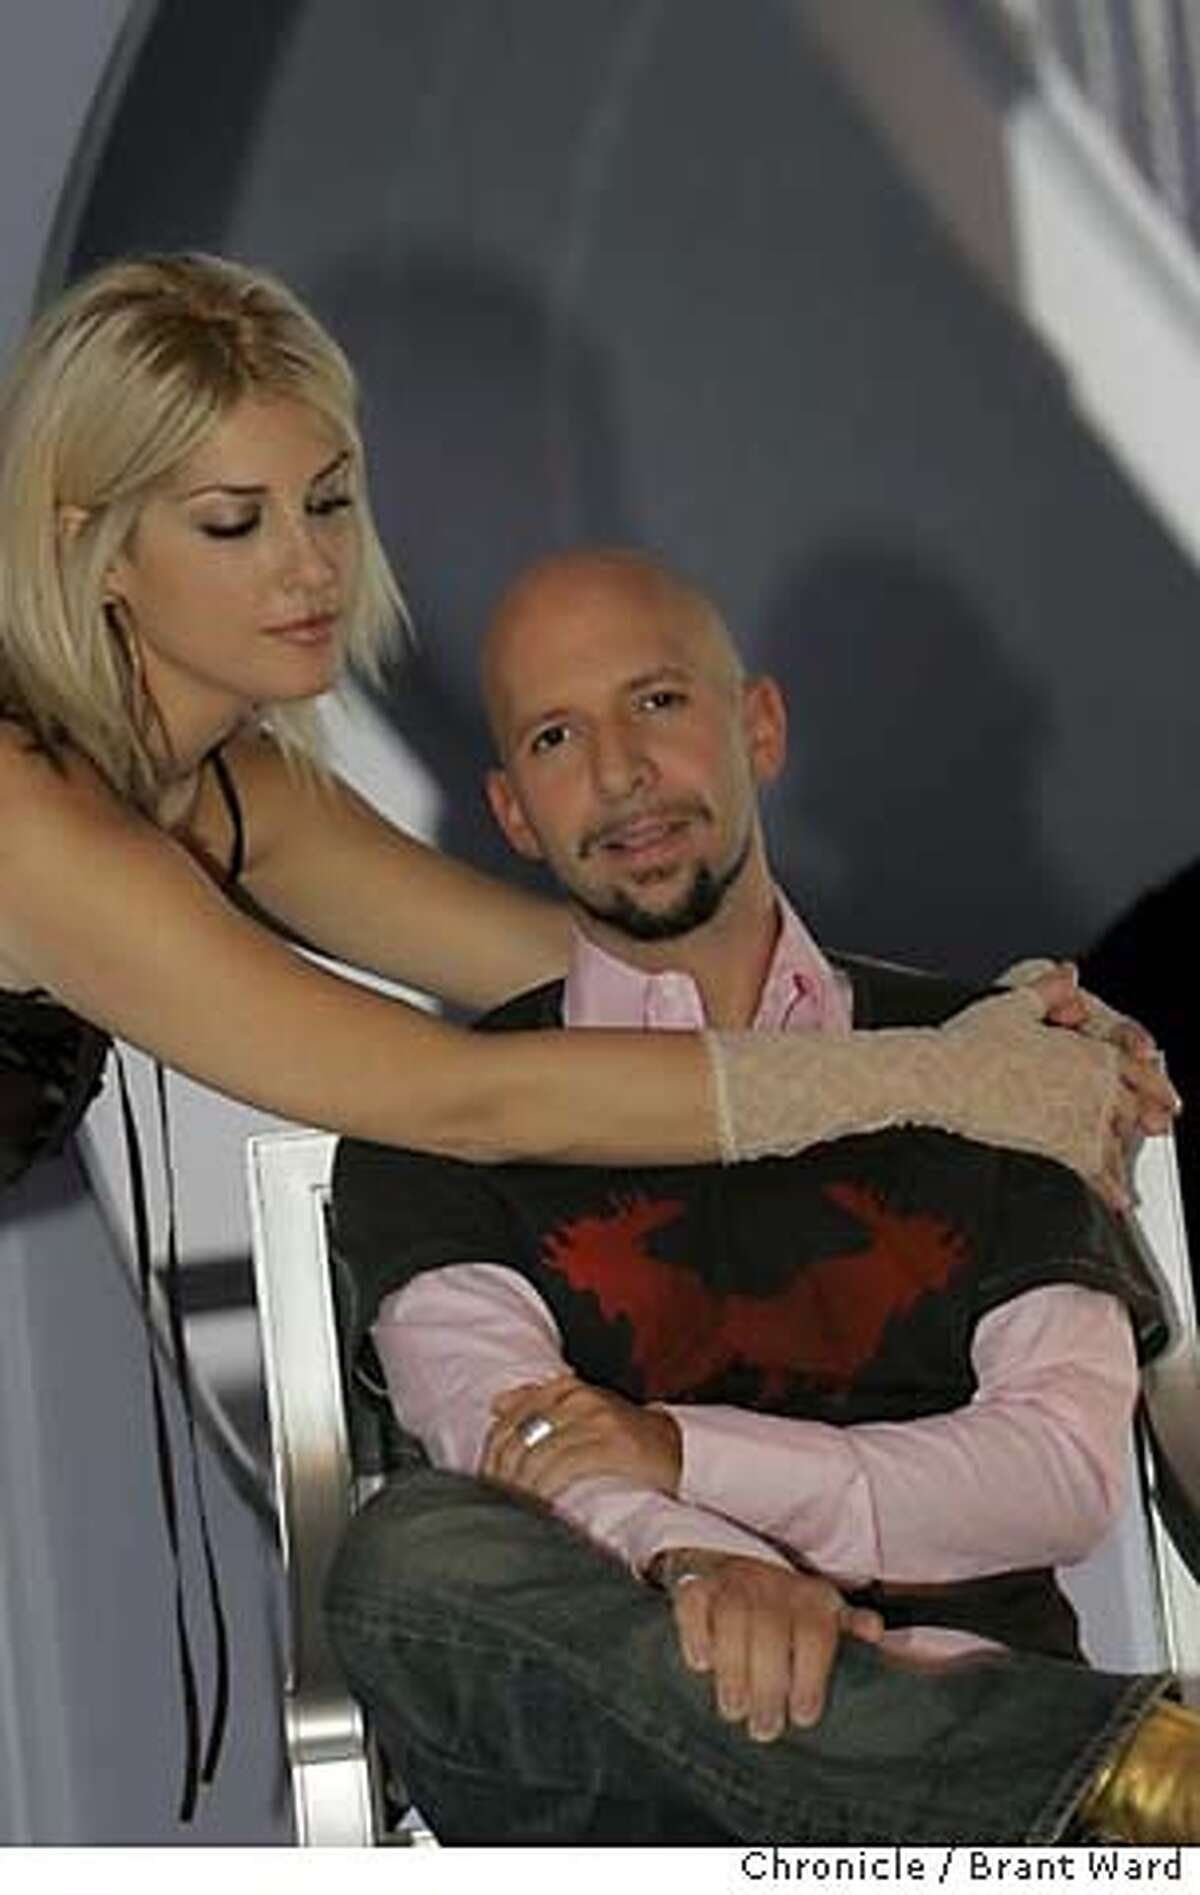 Neil Strauss has written a book about the singles game called